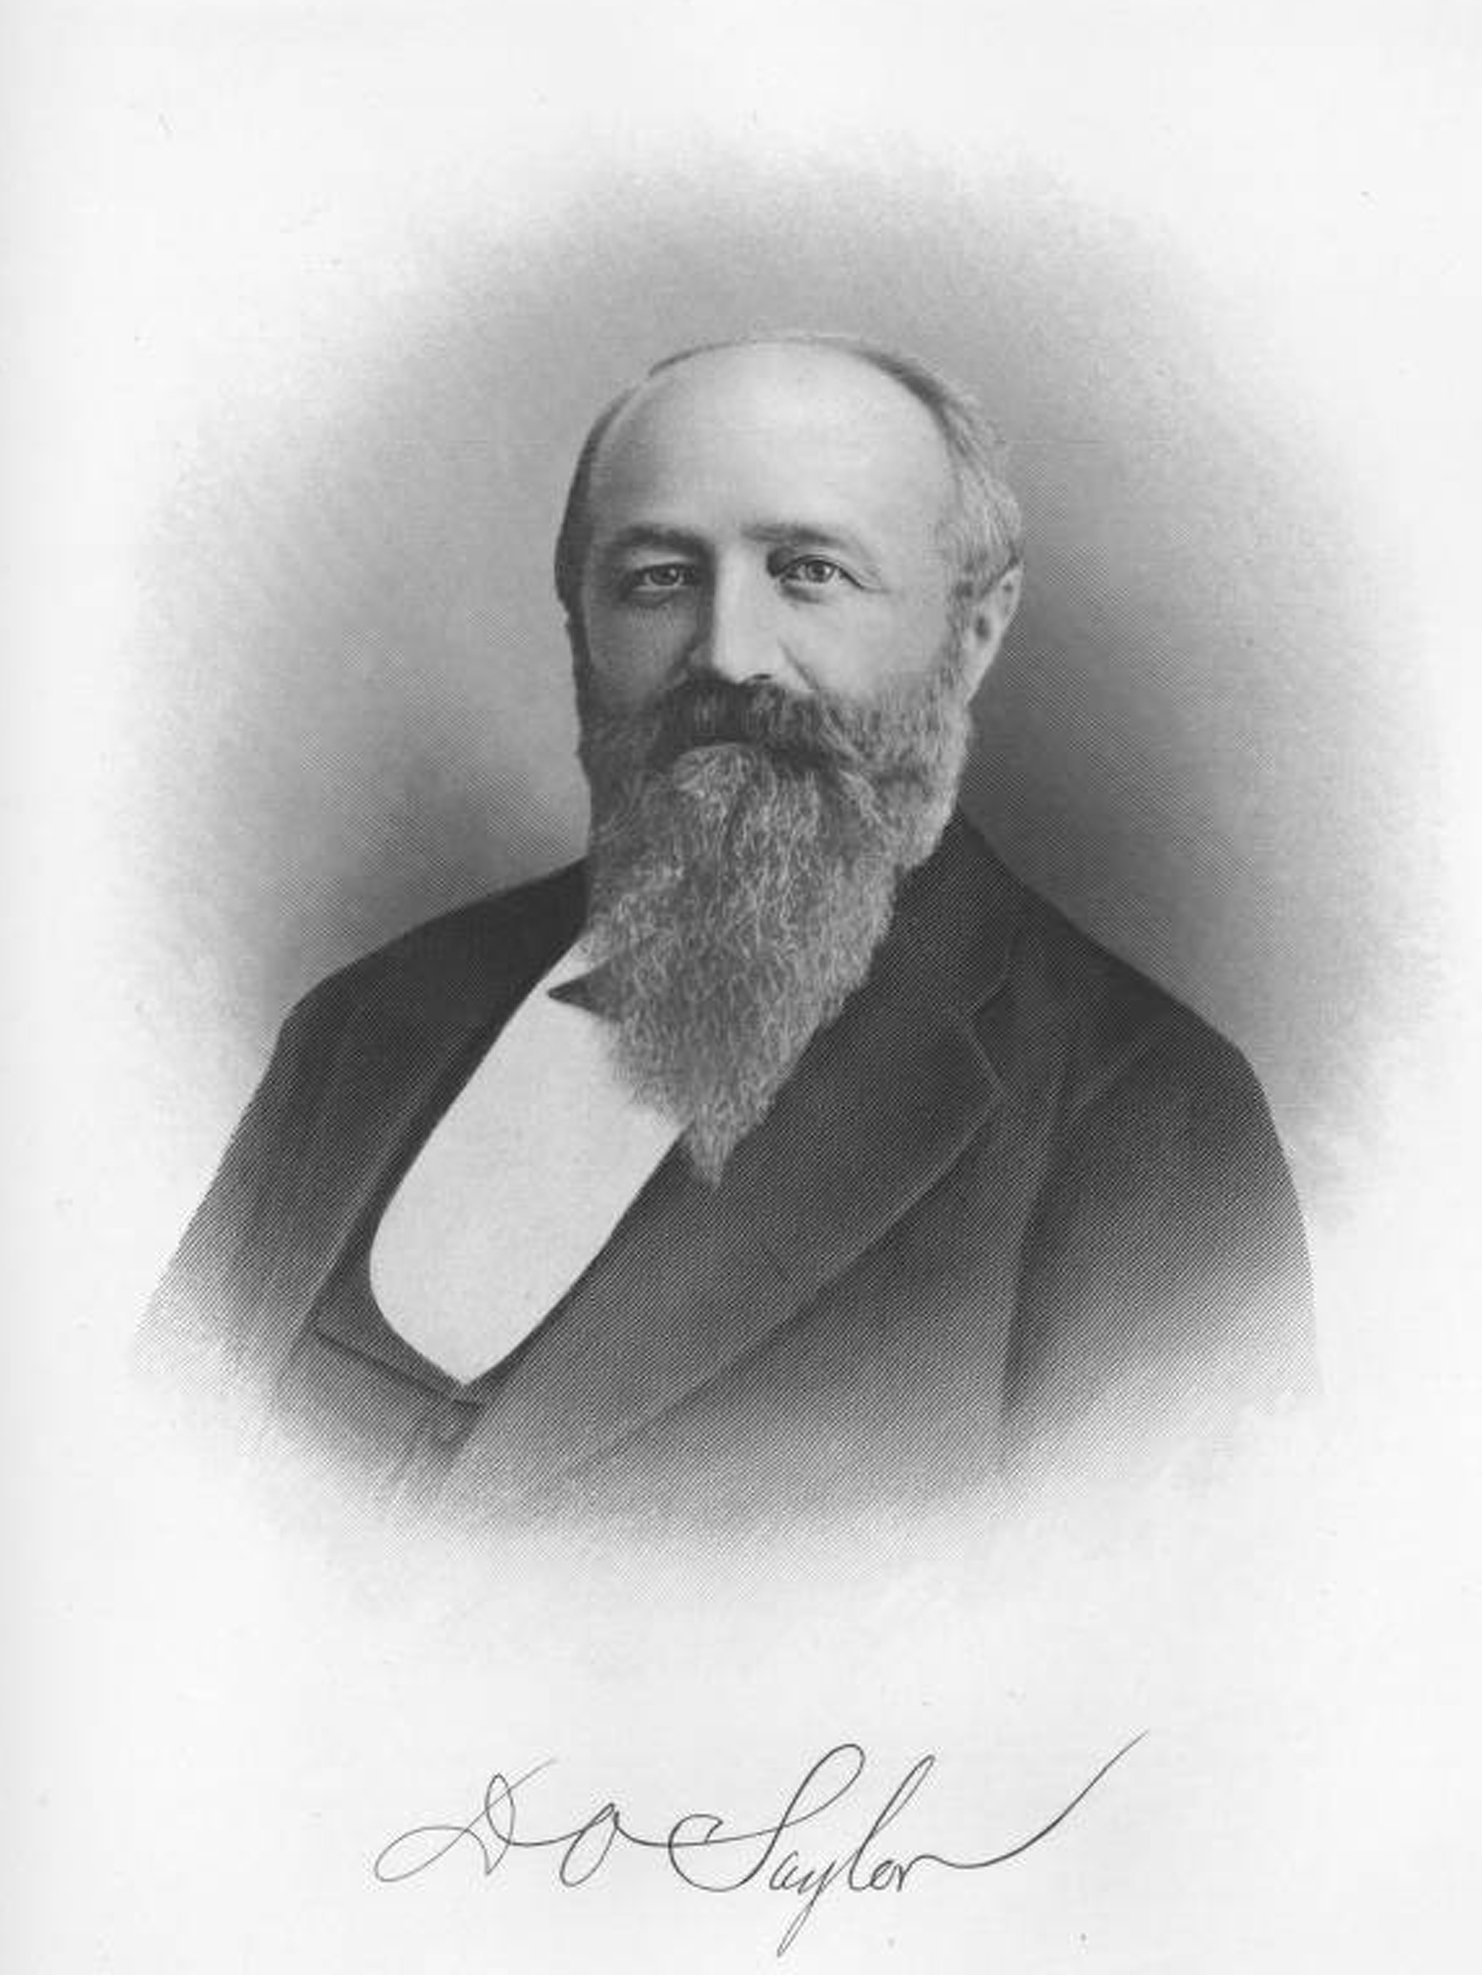 A photograph of David O. Saylor, one of the founders of the Coplay Cement Company.